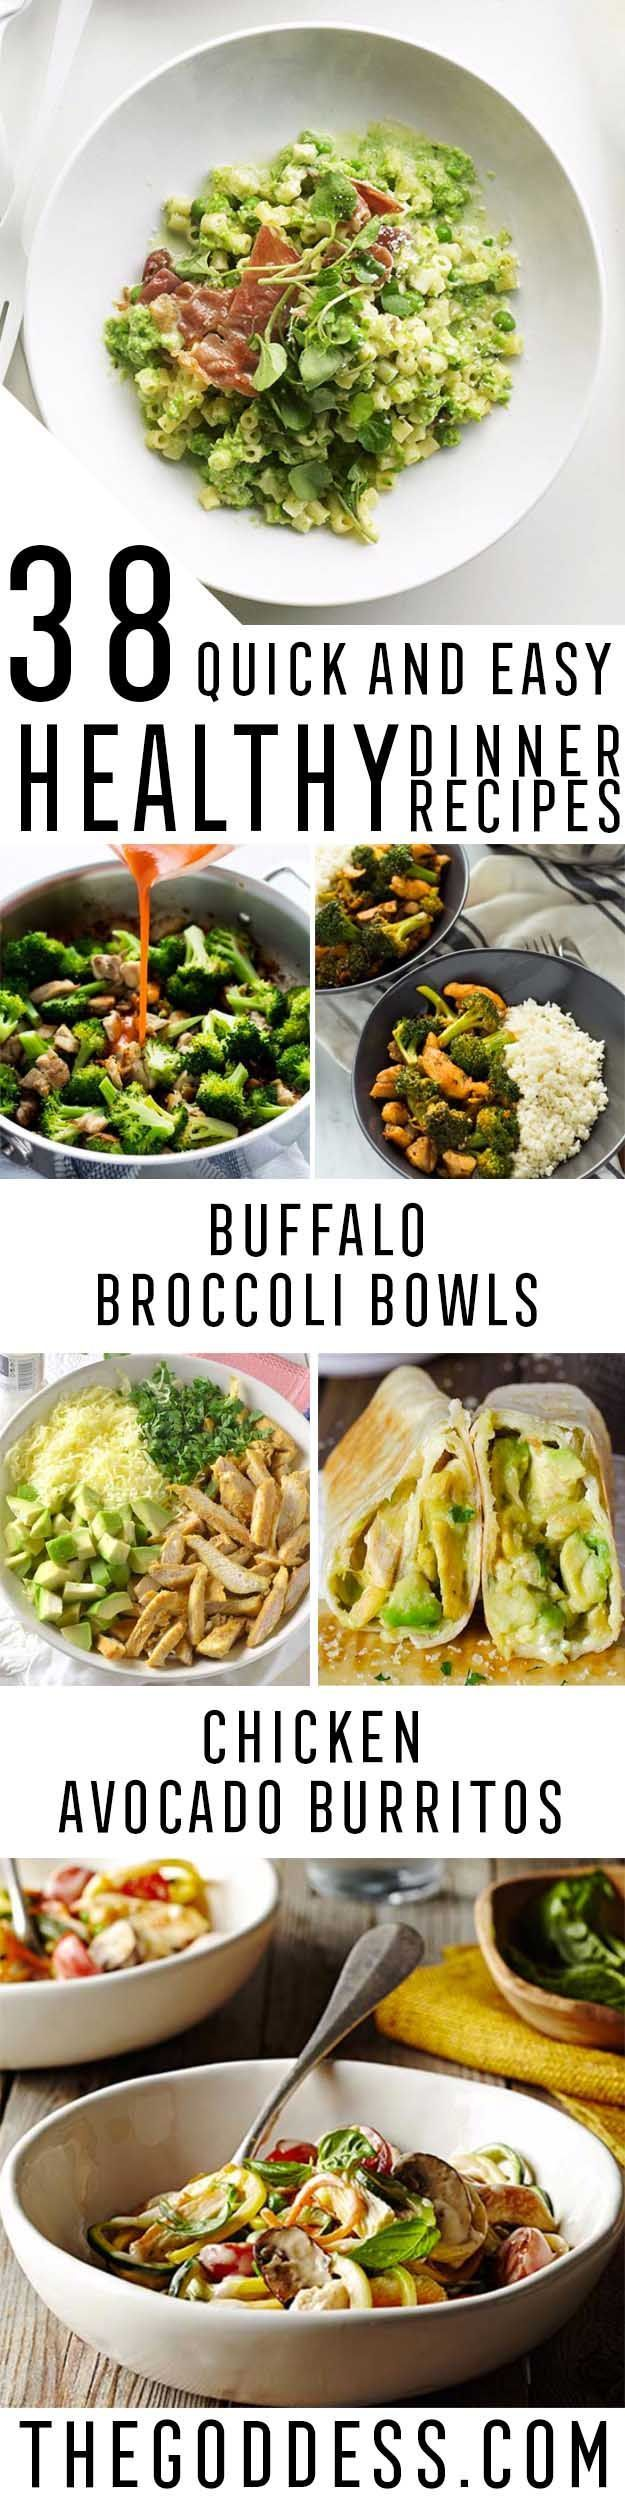 Quick and Easy Healthy Dinner Recipes - Awesome Recipes For Weight Loss - Great Receipes For One, For Two or For Family Gatherings - Quick Recipes for When You're On A Budget - Chicken and Zucchini Dishes Under 500 Calories - Quick Low Carb Dinners With Beef or Shrimp or Even Vegetarian - Amazing Dishes For Picky Eaters - http://thegoddess.com/easy-healthy-dinner-receipes